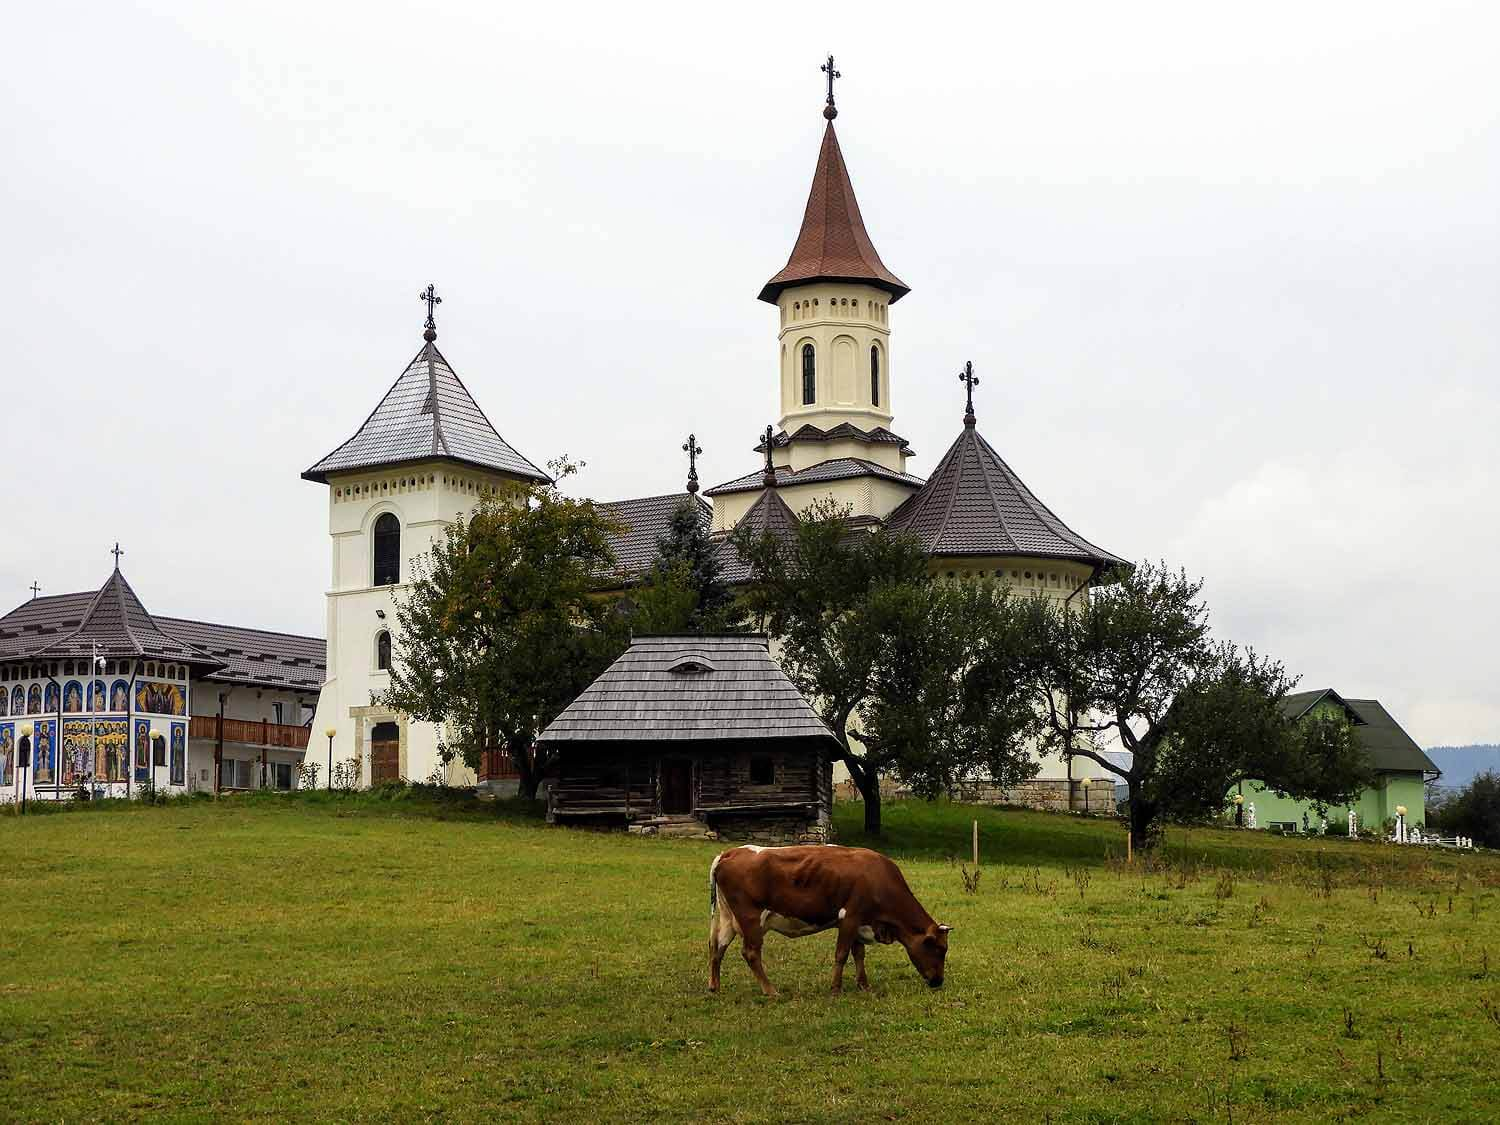 romania-bucovina-humor-painted-monasteries-local-church-cow.jpg